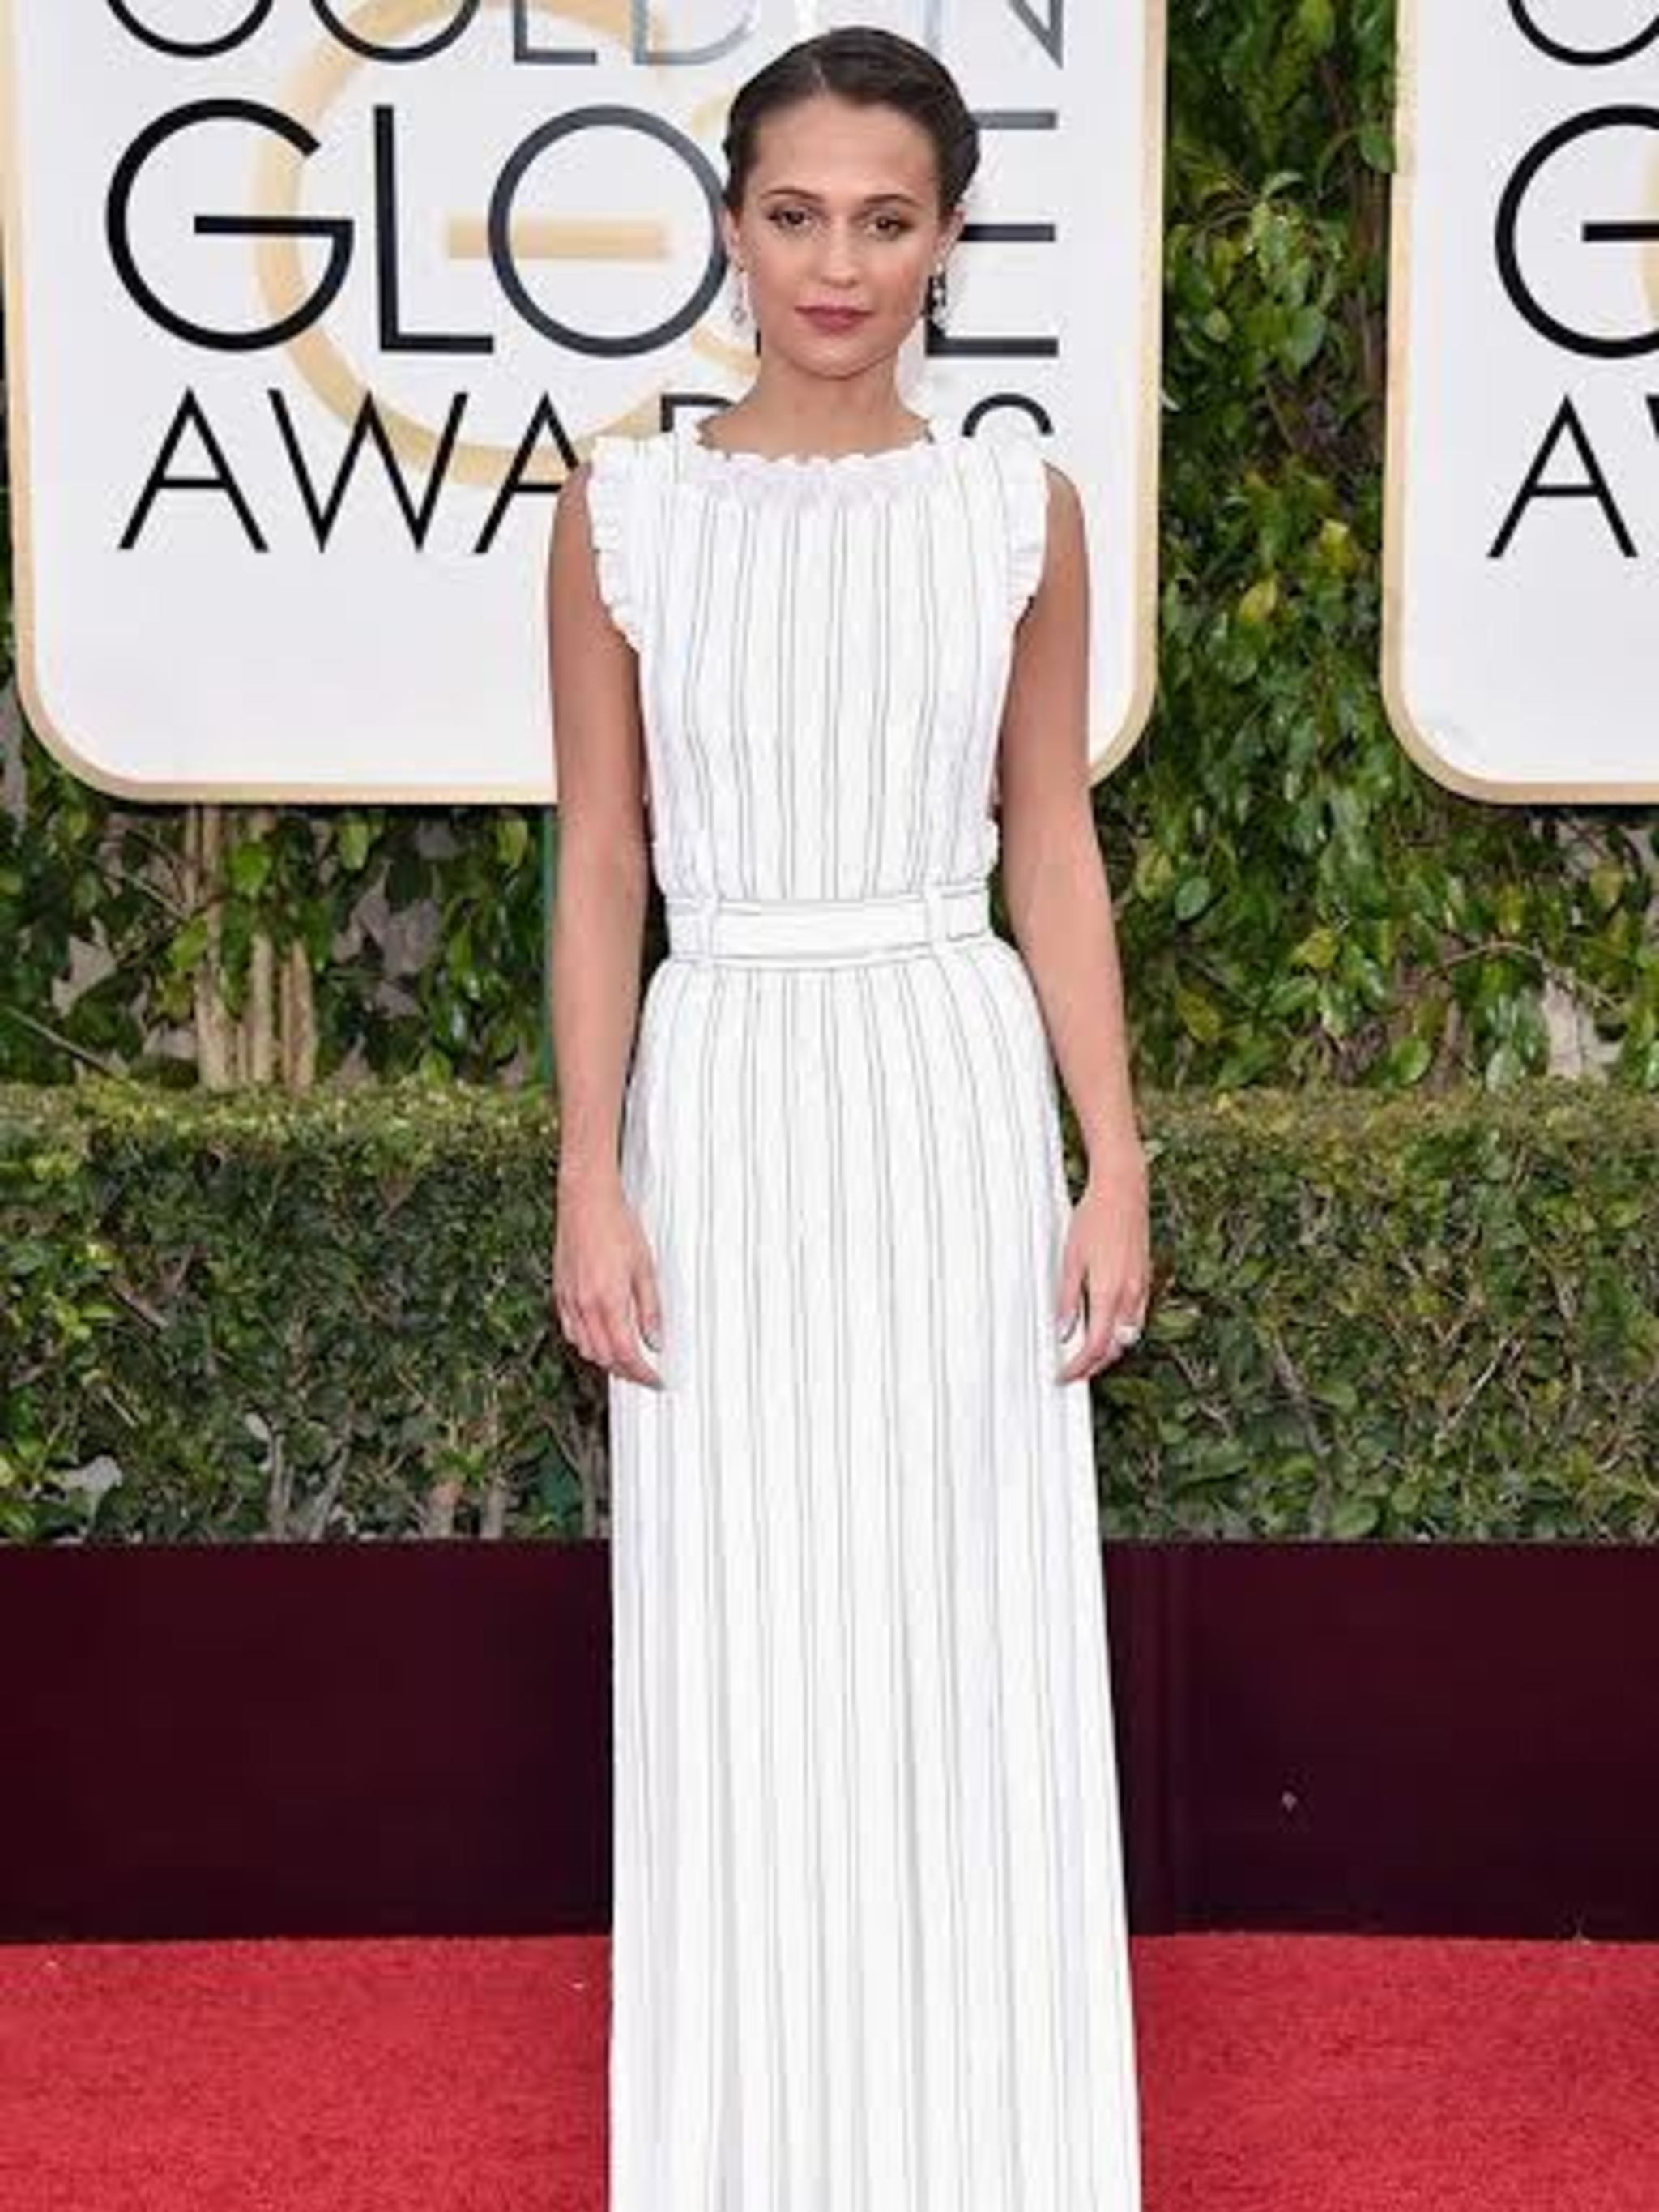 <p>Alicia Vikander in Louis Vuitton: I love how fresh and modern Alicia looks in this Vuitton gown. A brilliant example ofhow to black tie in a pretty and cool way. The pulled back hair and drop earrings add to thefeeling of relaxed glamour.</p>